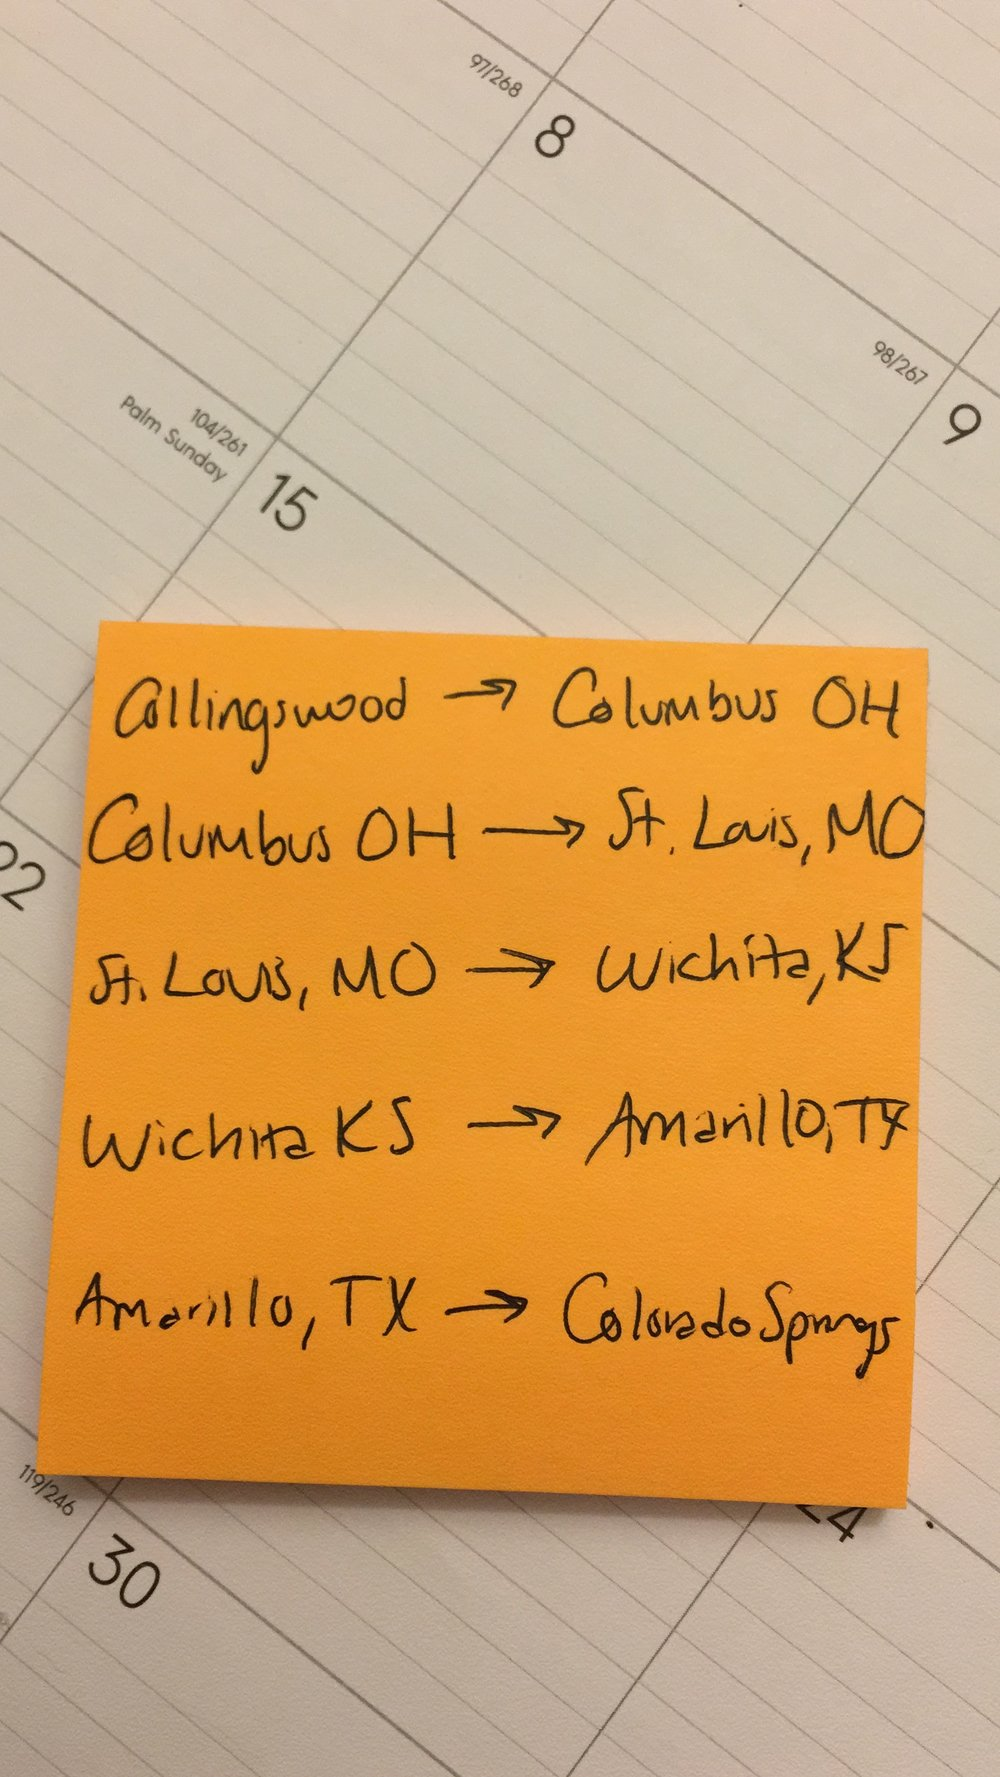 The outline of a potential road trip